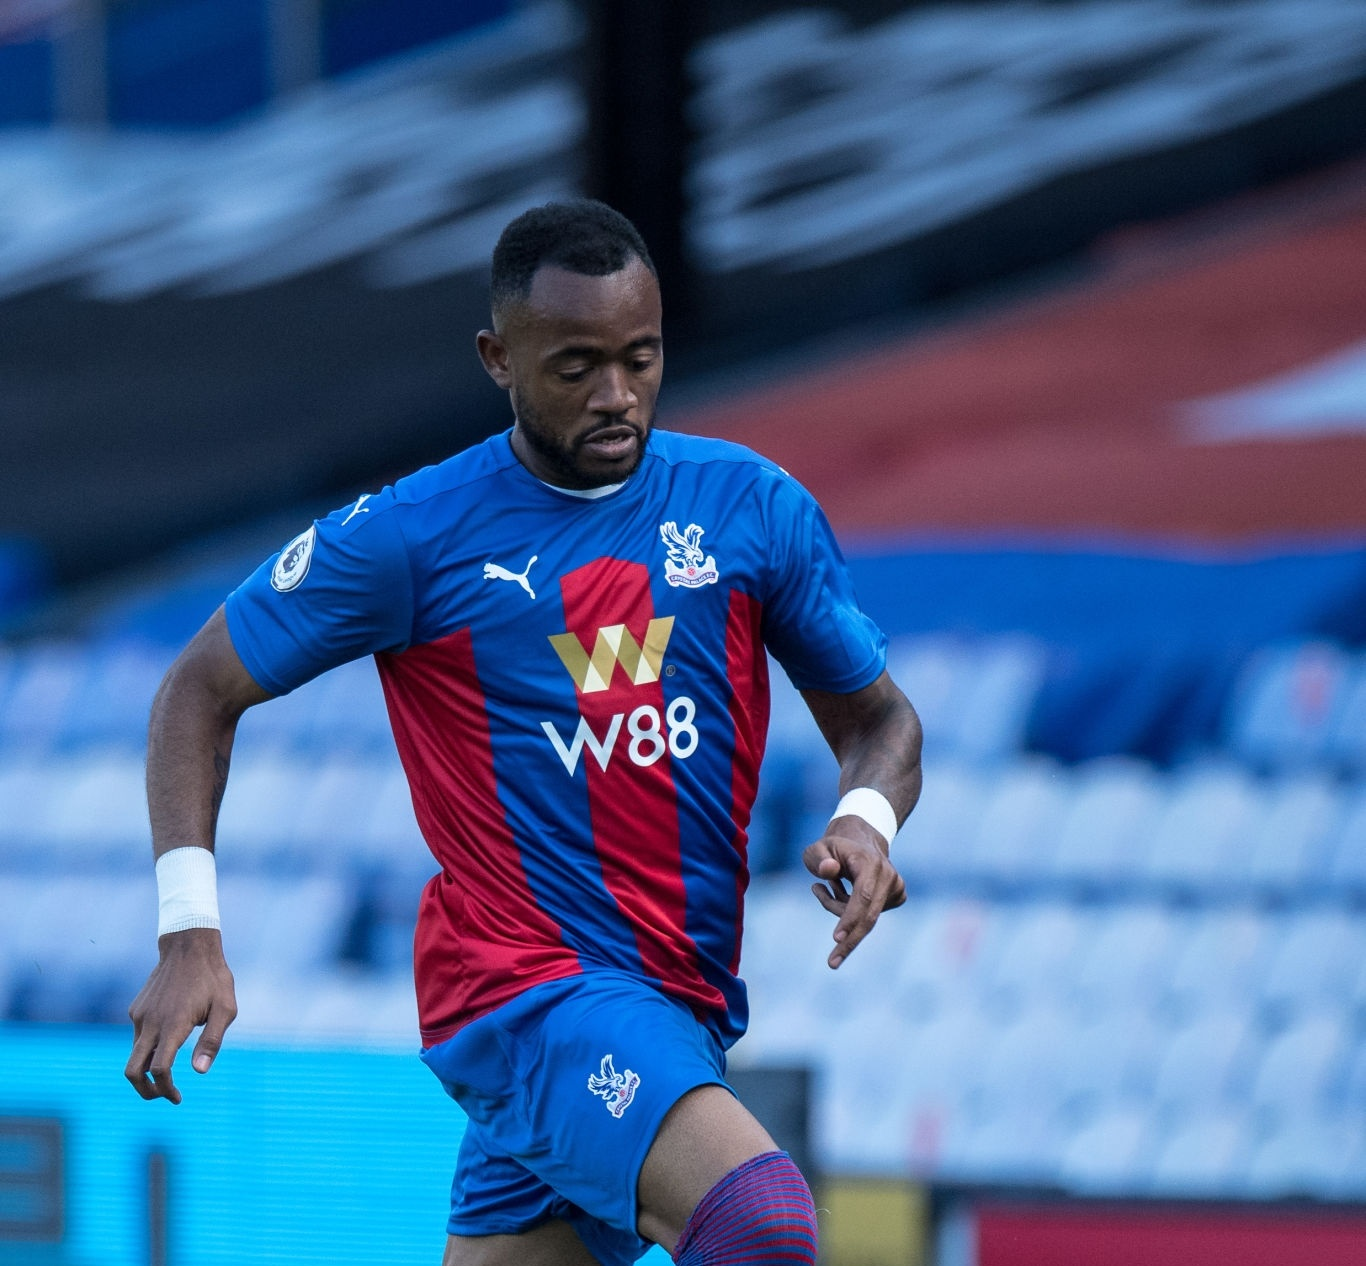 FEATURE: Jordan Ayew - Ghana and Crystal Palace star's rise to the top